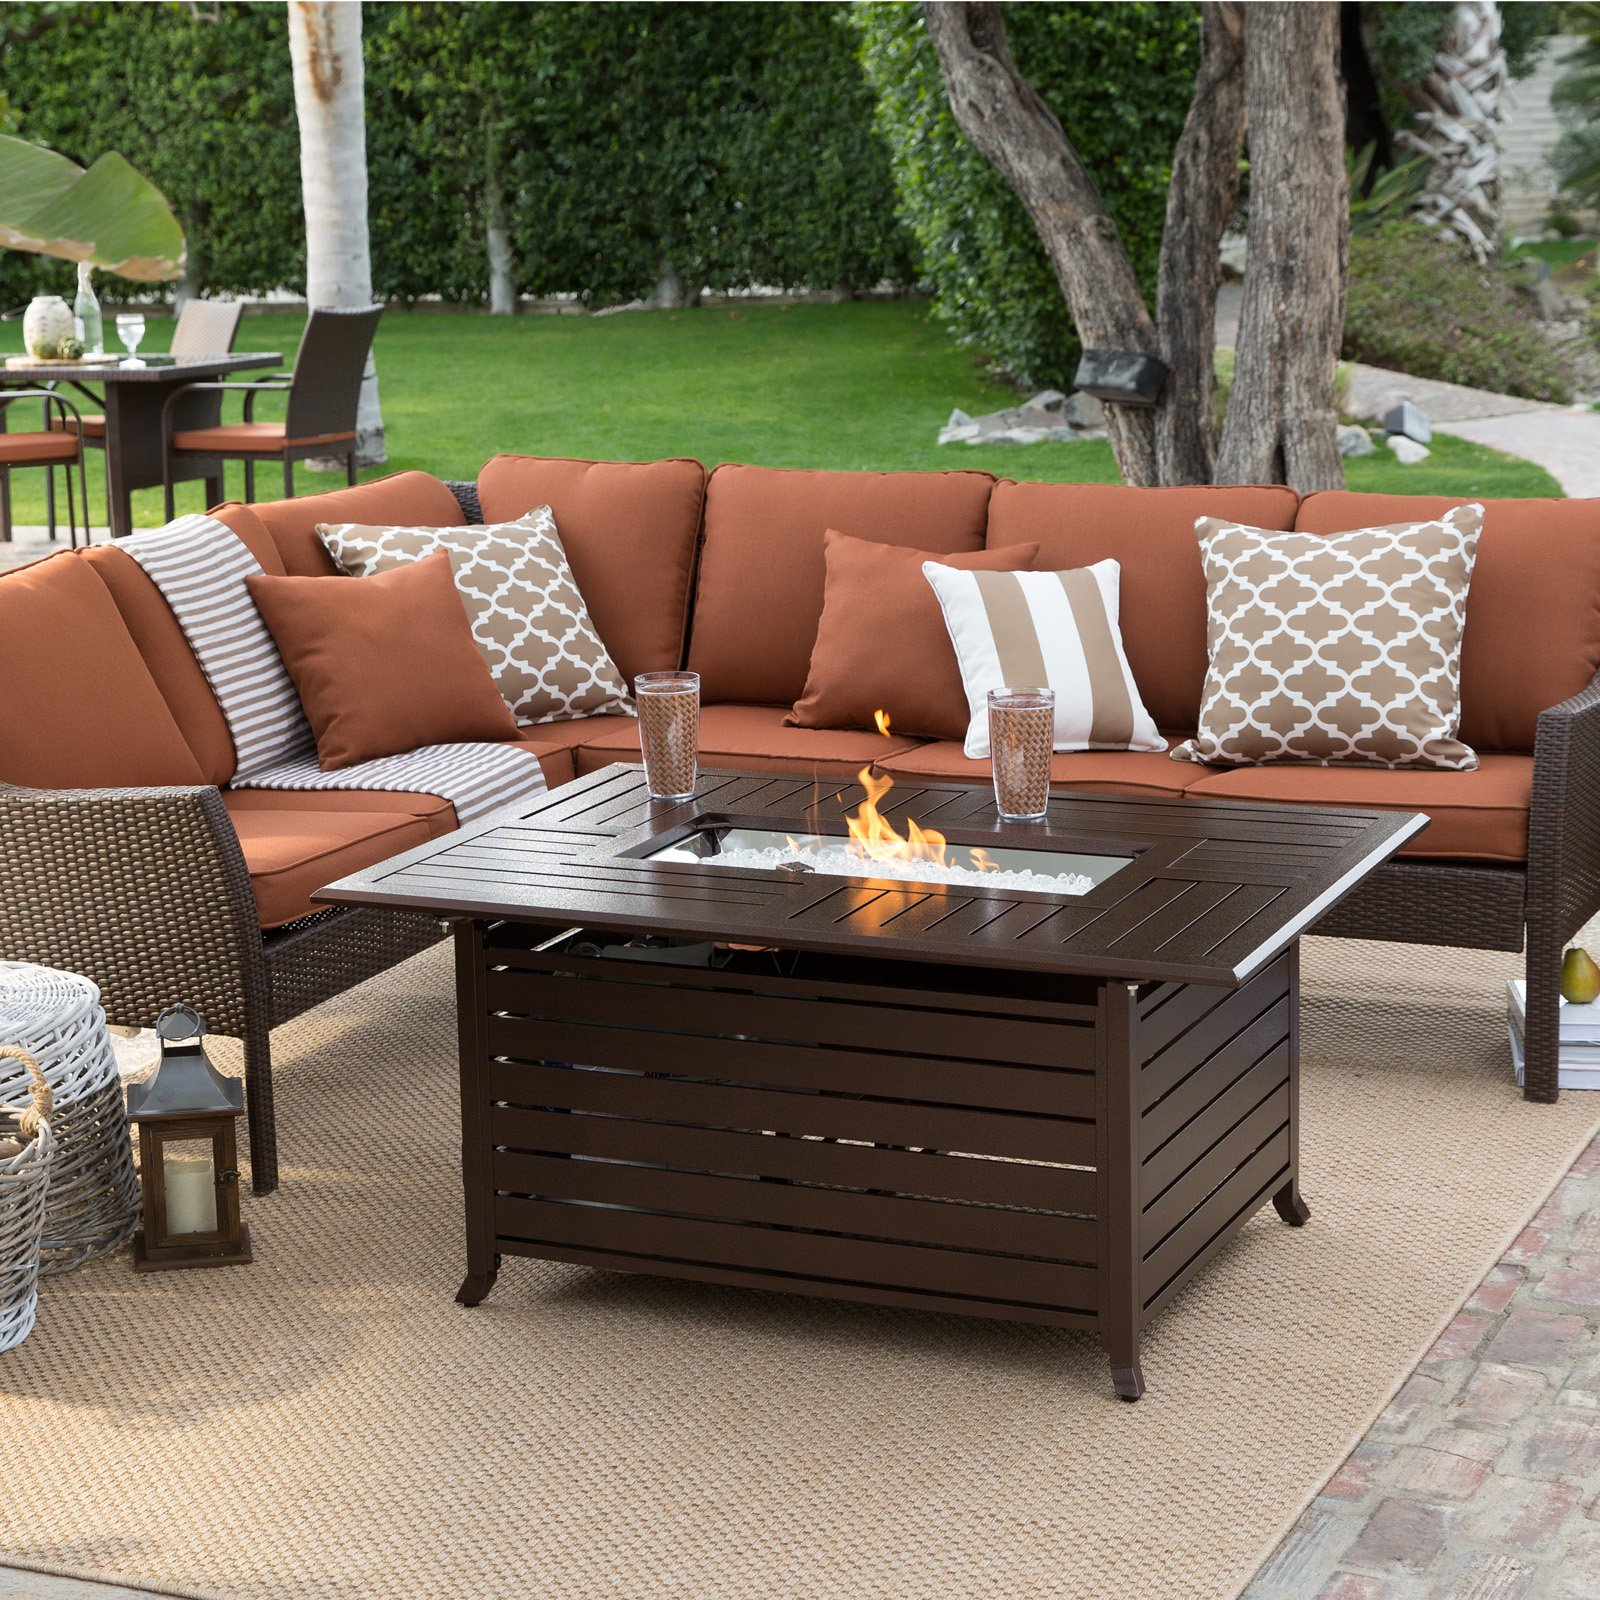 Belham Living Devon All Weather Wicker Fire Pit Conversation Set